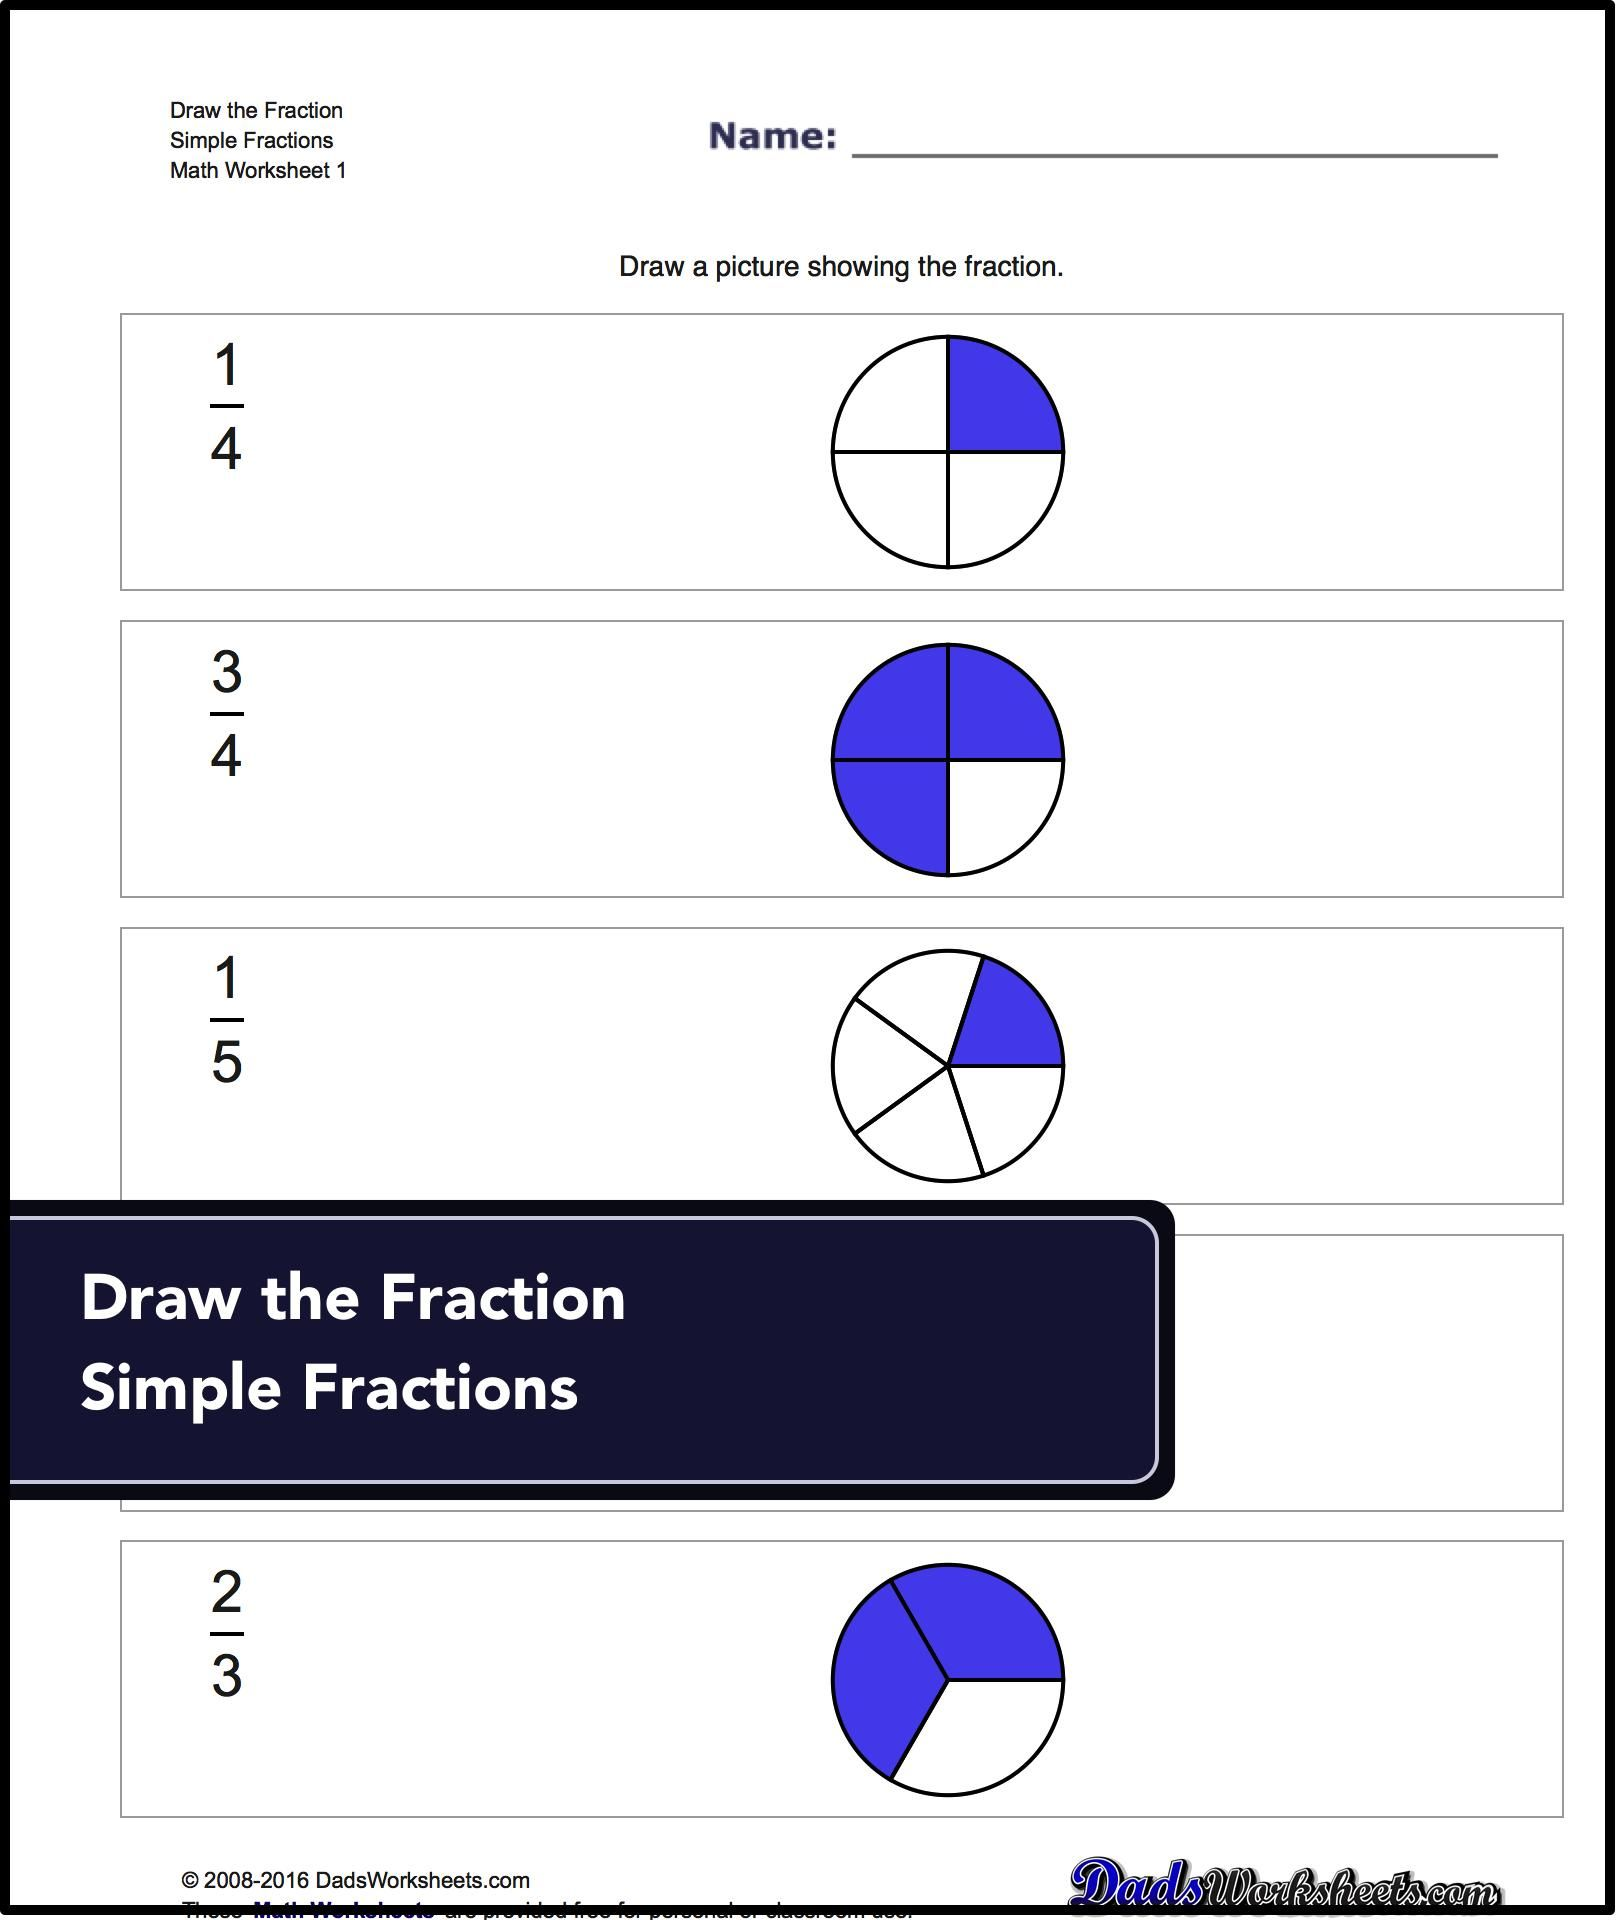 Fractions worksheets where students are given a simple fraction